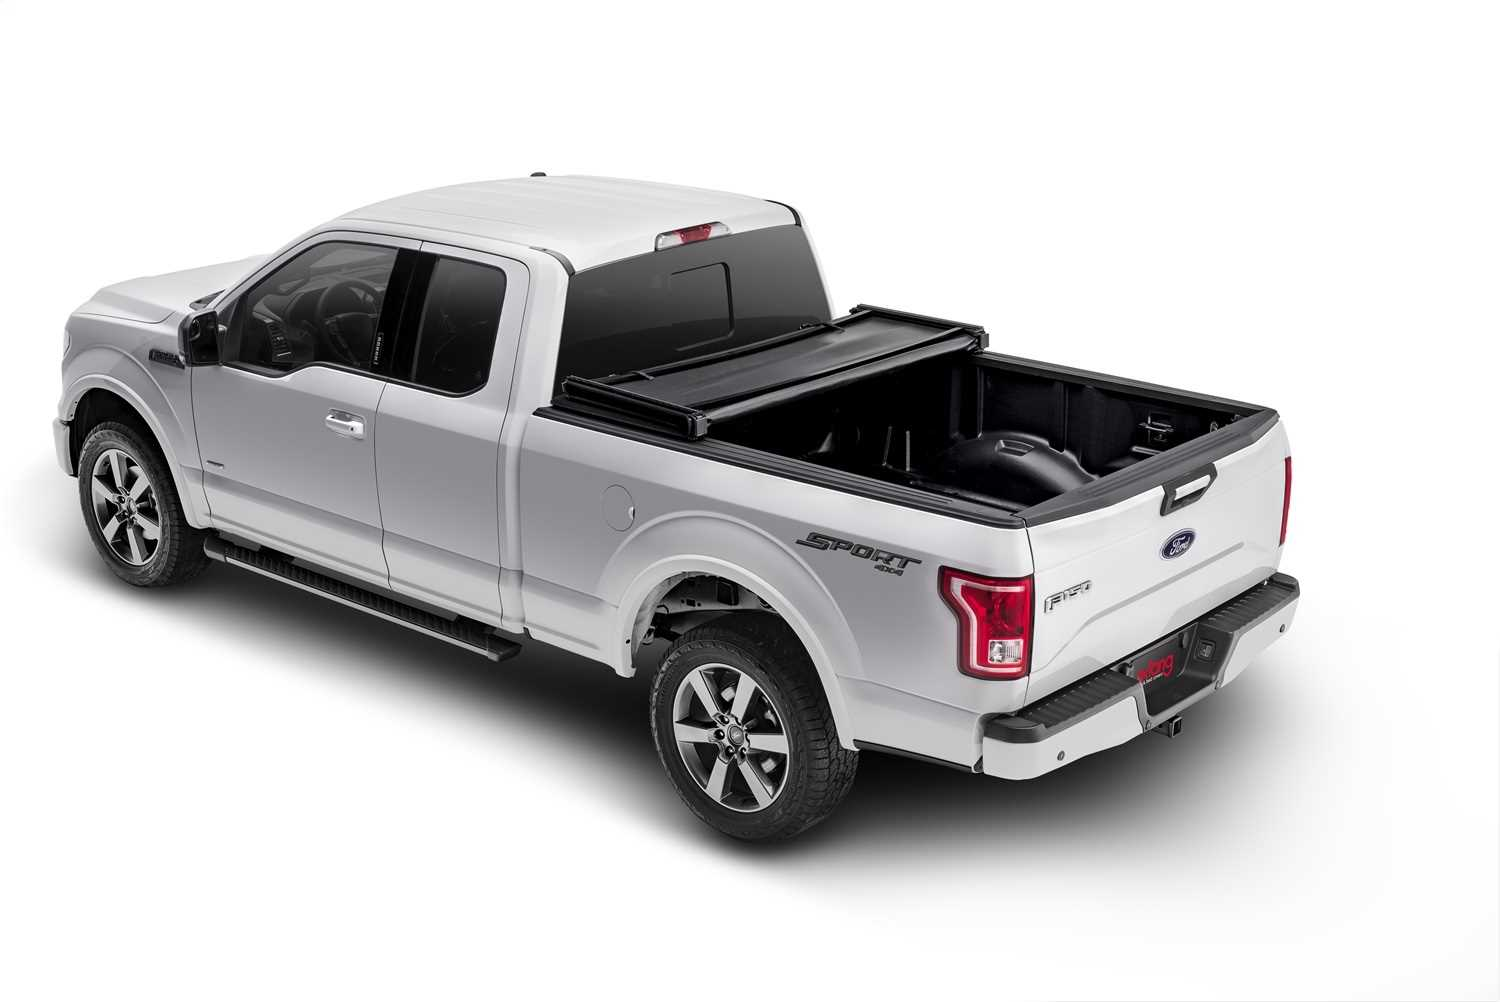 94636 Extang Trifecta Signature 2.0 Tonneau Cover